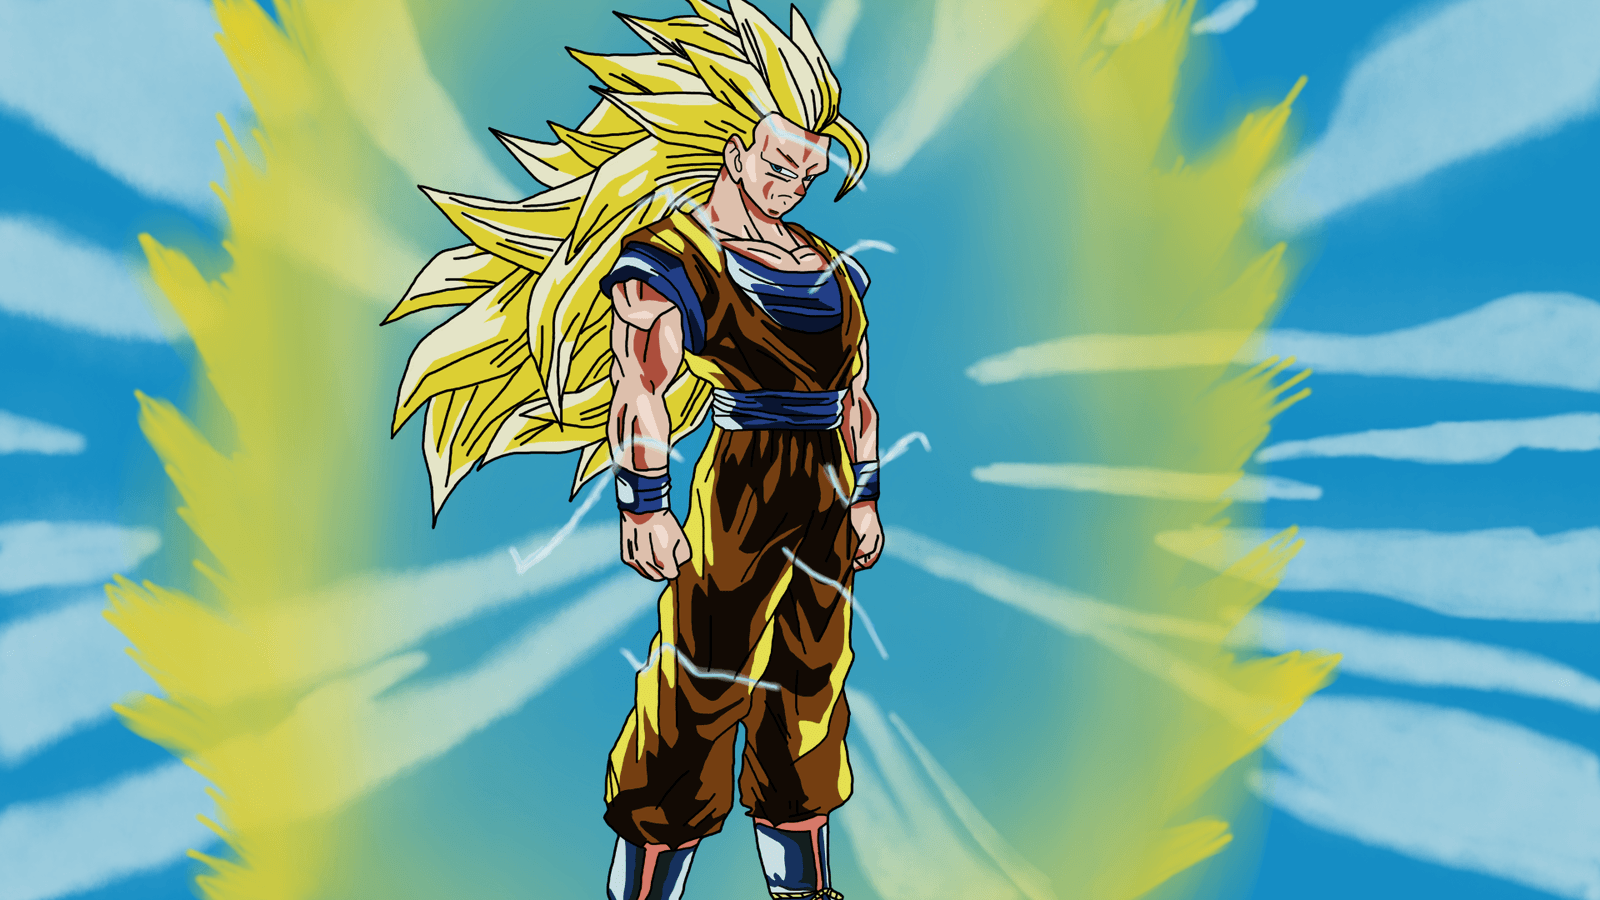 Goku Super Saiyan 3 Blue And Gold Wallpapers